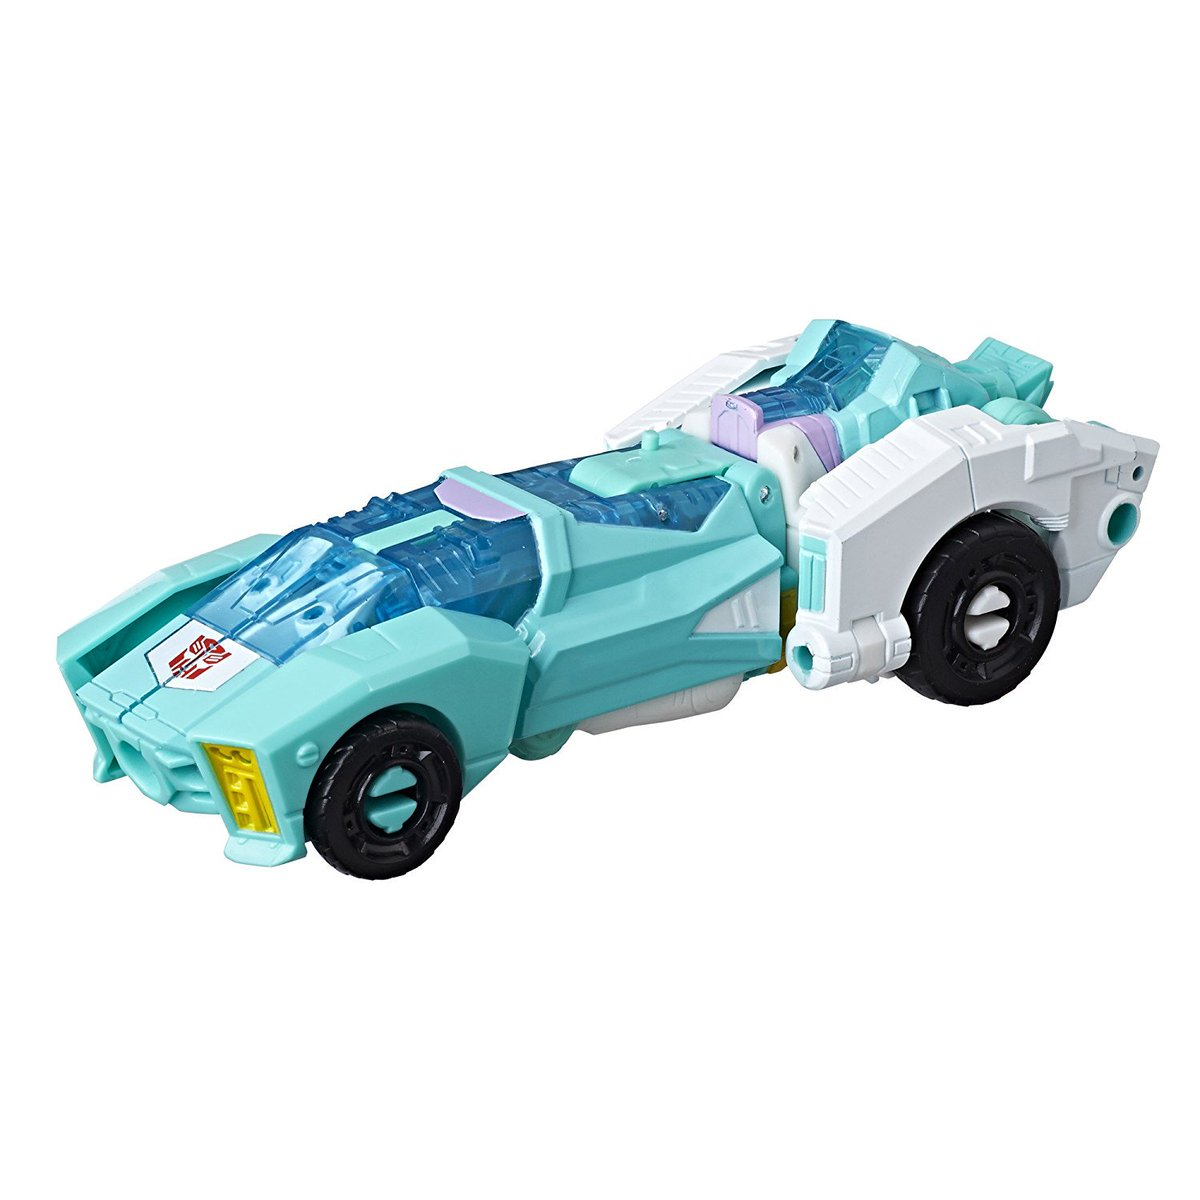 Transformers News: Takara POTP June and July Listings with Dreadwind, Blackwing, Individual Dinobots and More